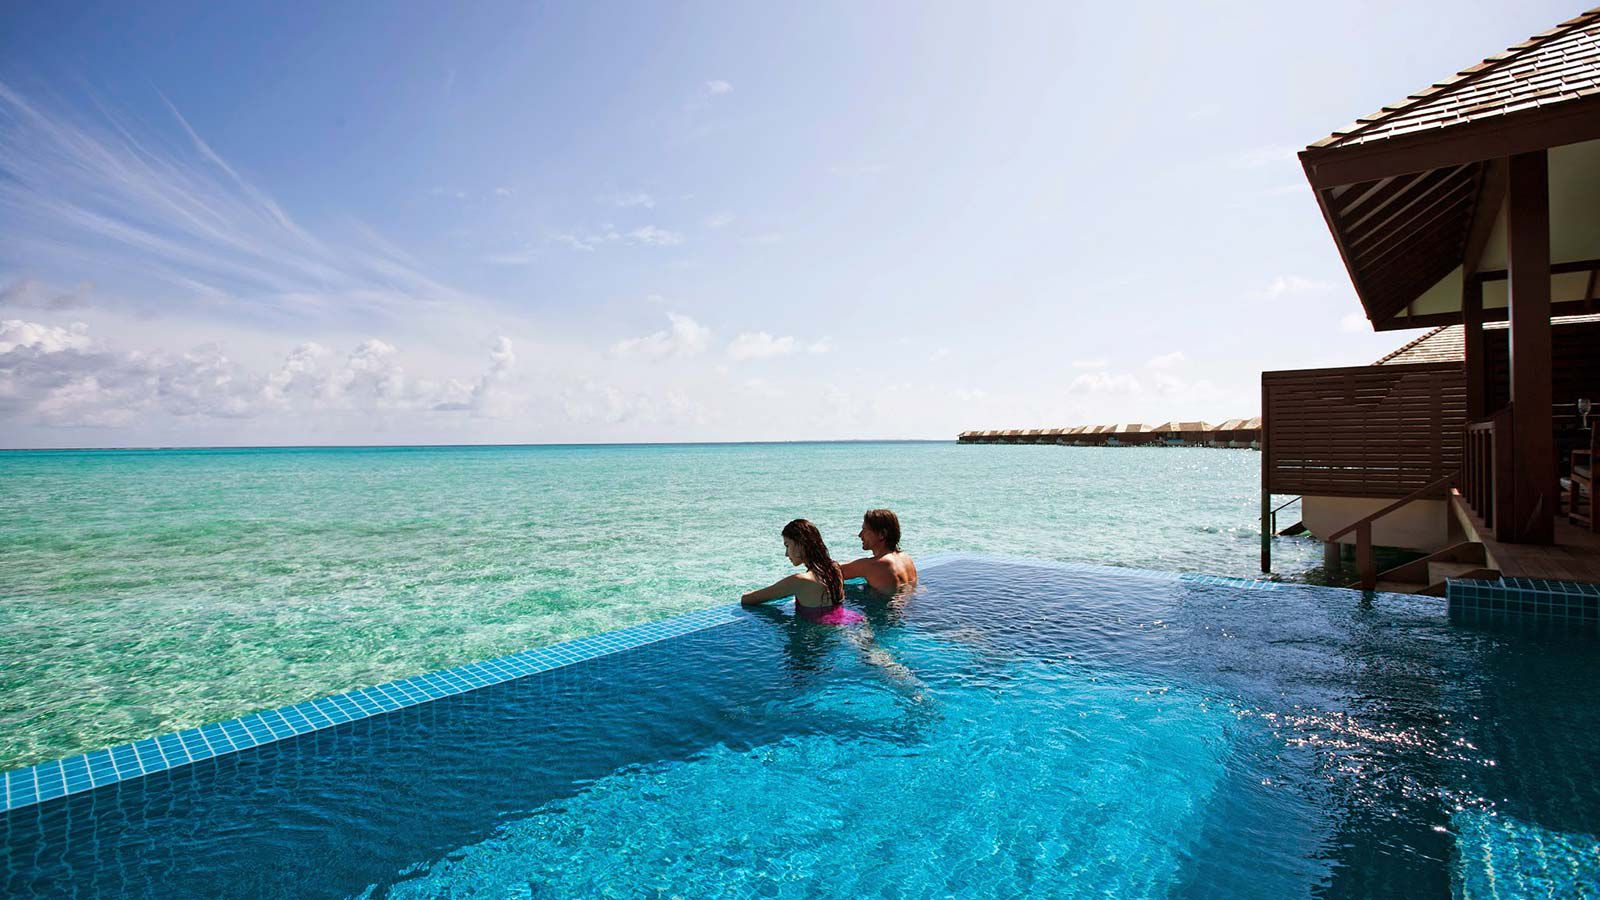 Maldives Villas - Maldives Luxury Resort - Hideaway Beach Resort